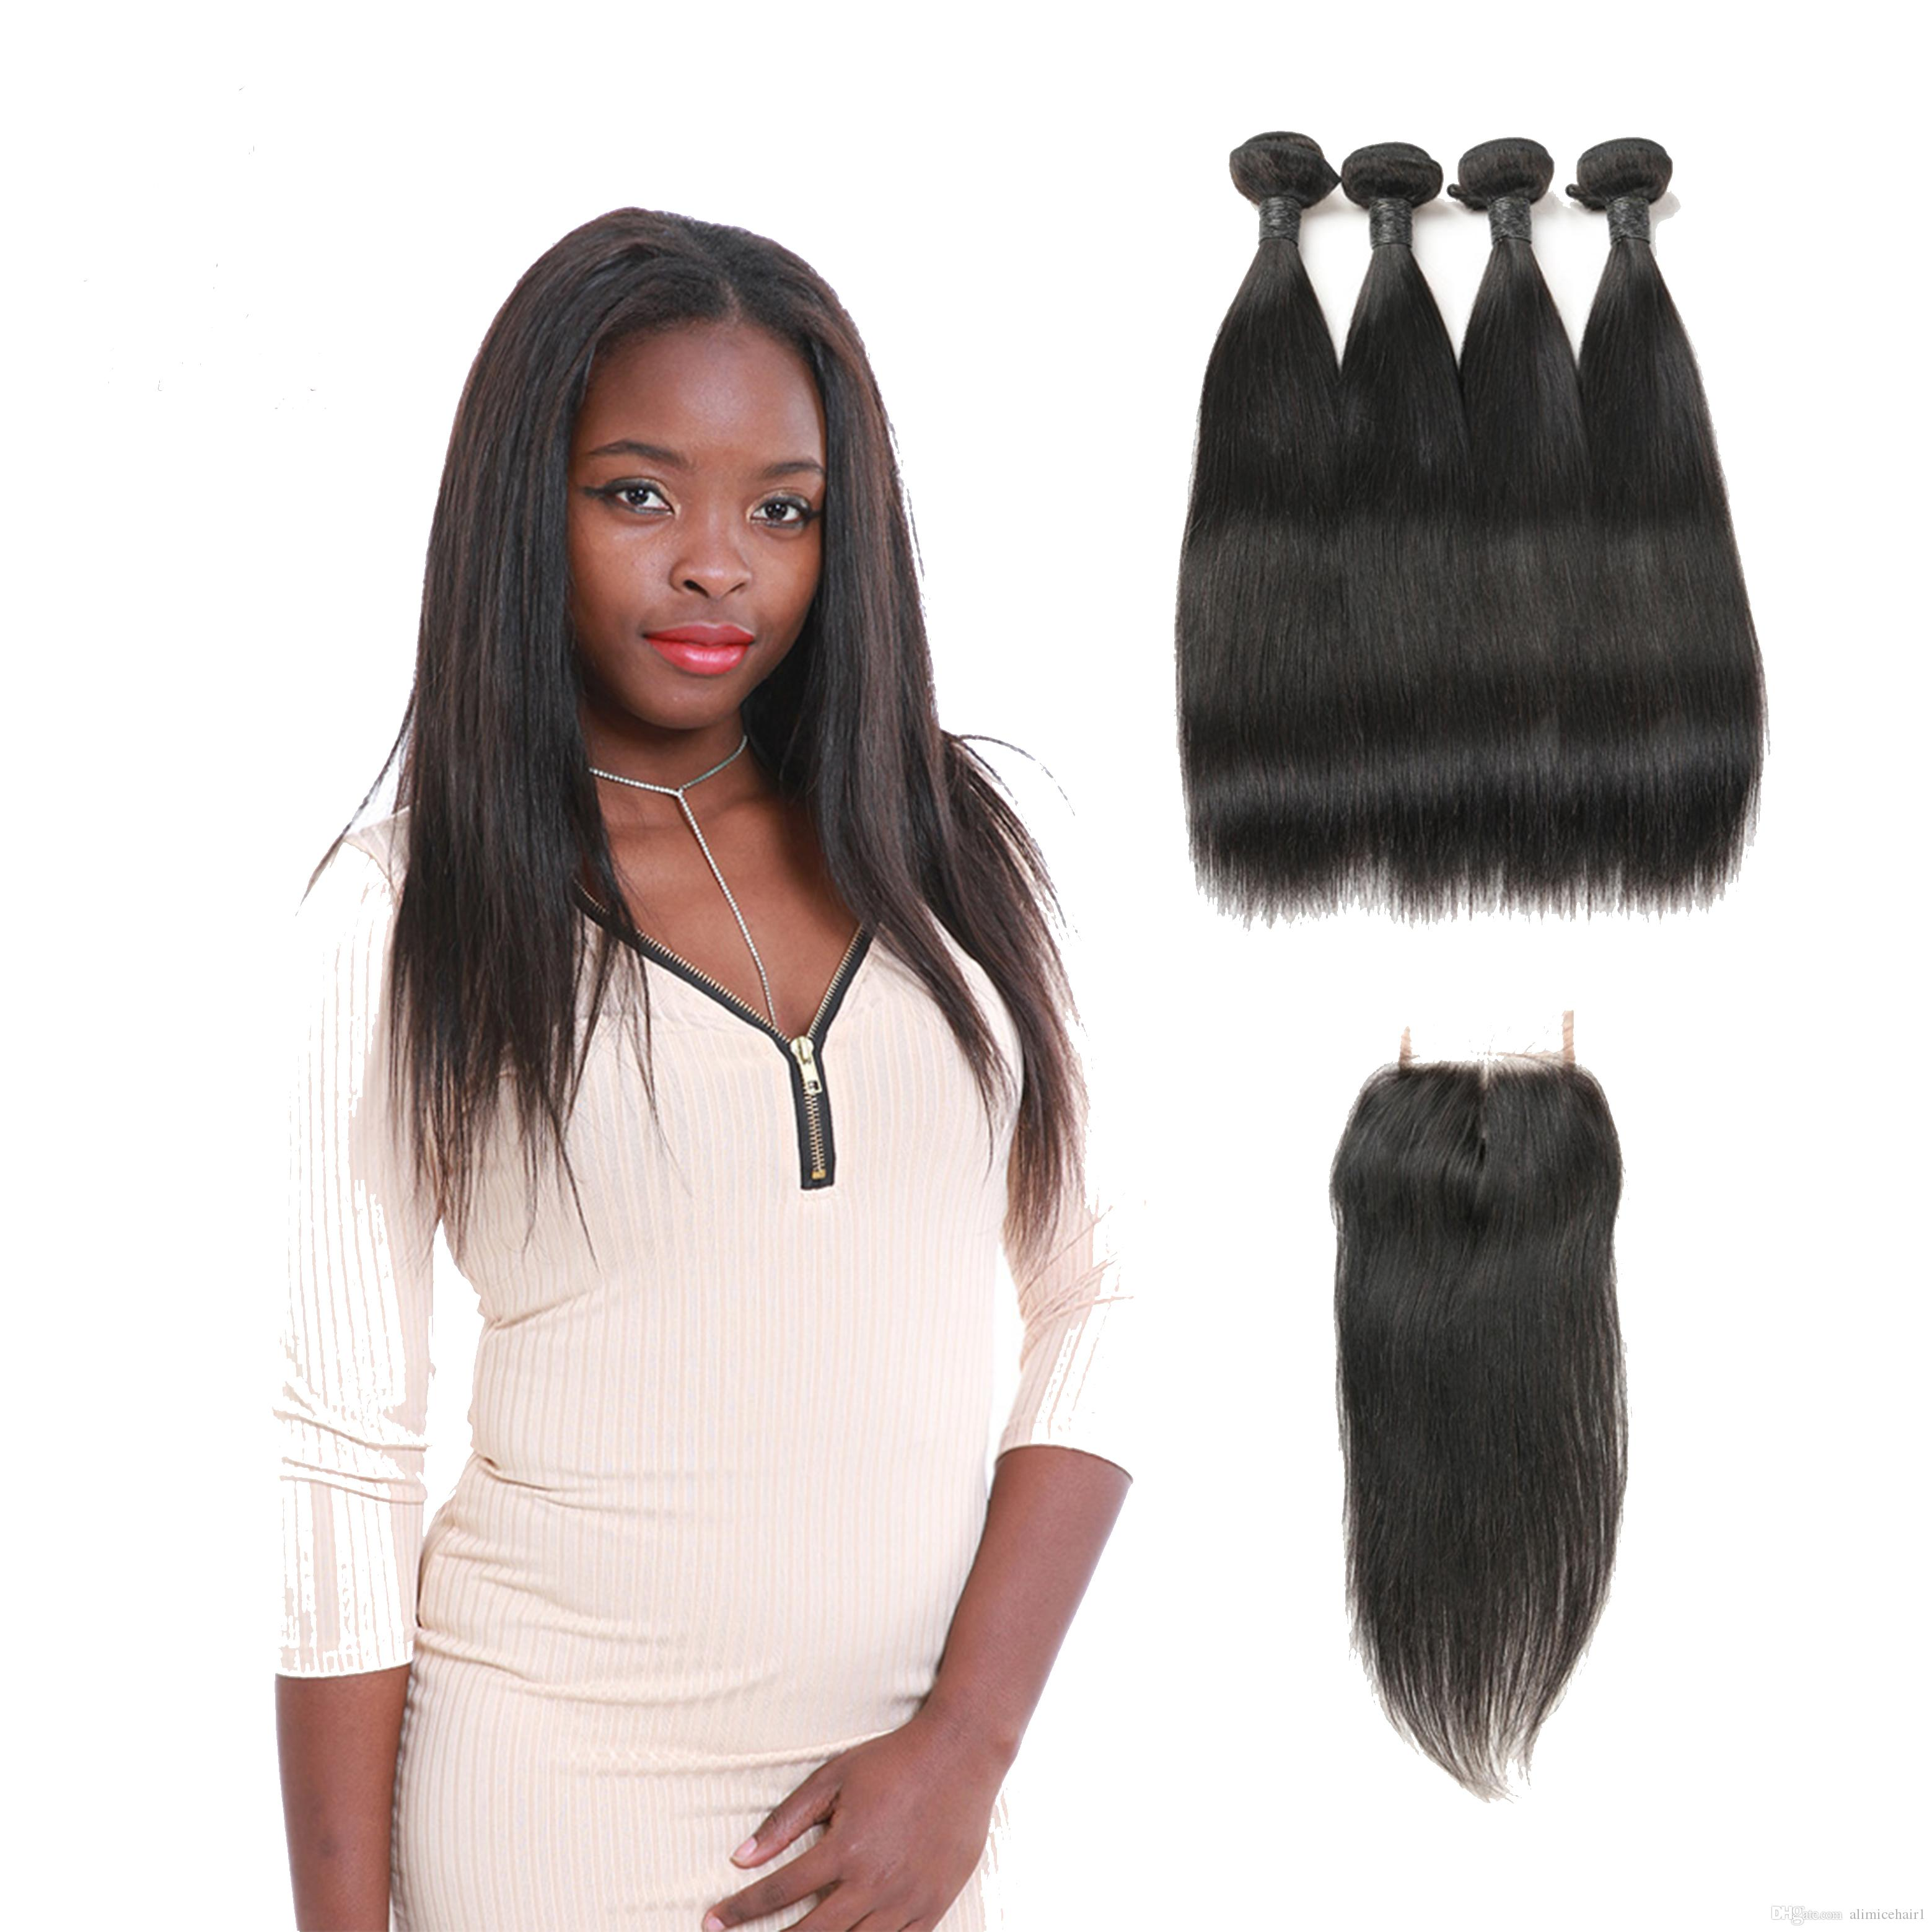 Indian Unprocessed Straight Virgin Human Hair Extension 4 Bundles Cheap With Middle Patr Lace Closure For Sale